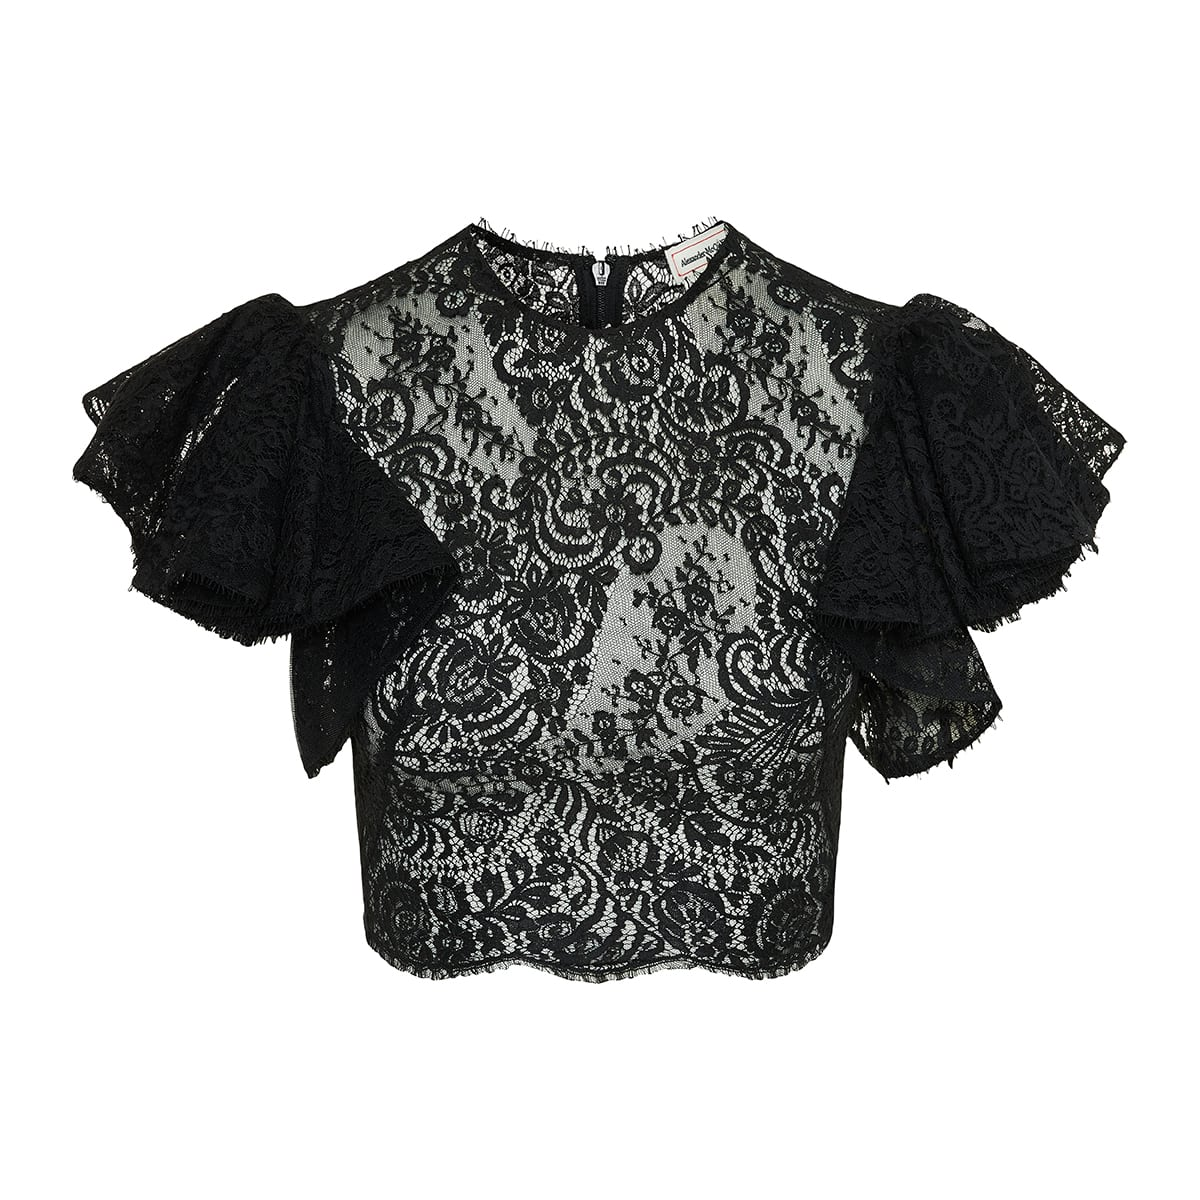 Ruffled lace cropped top